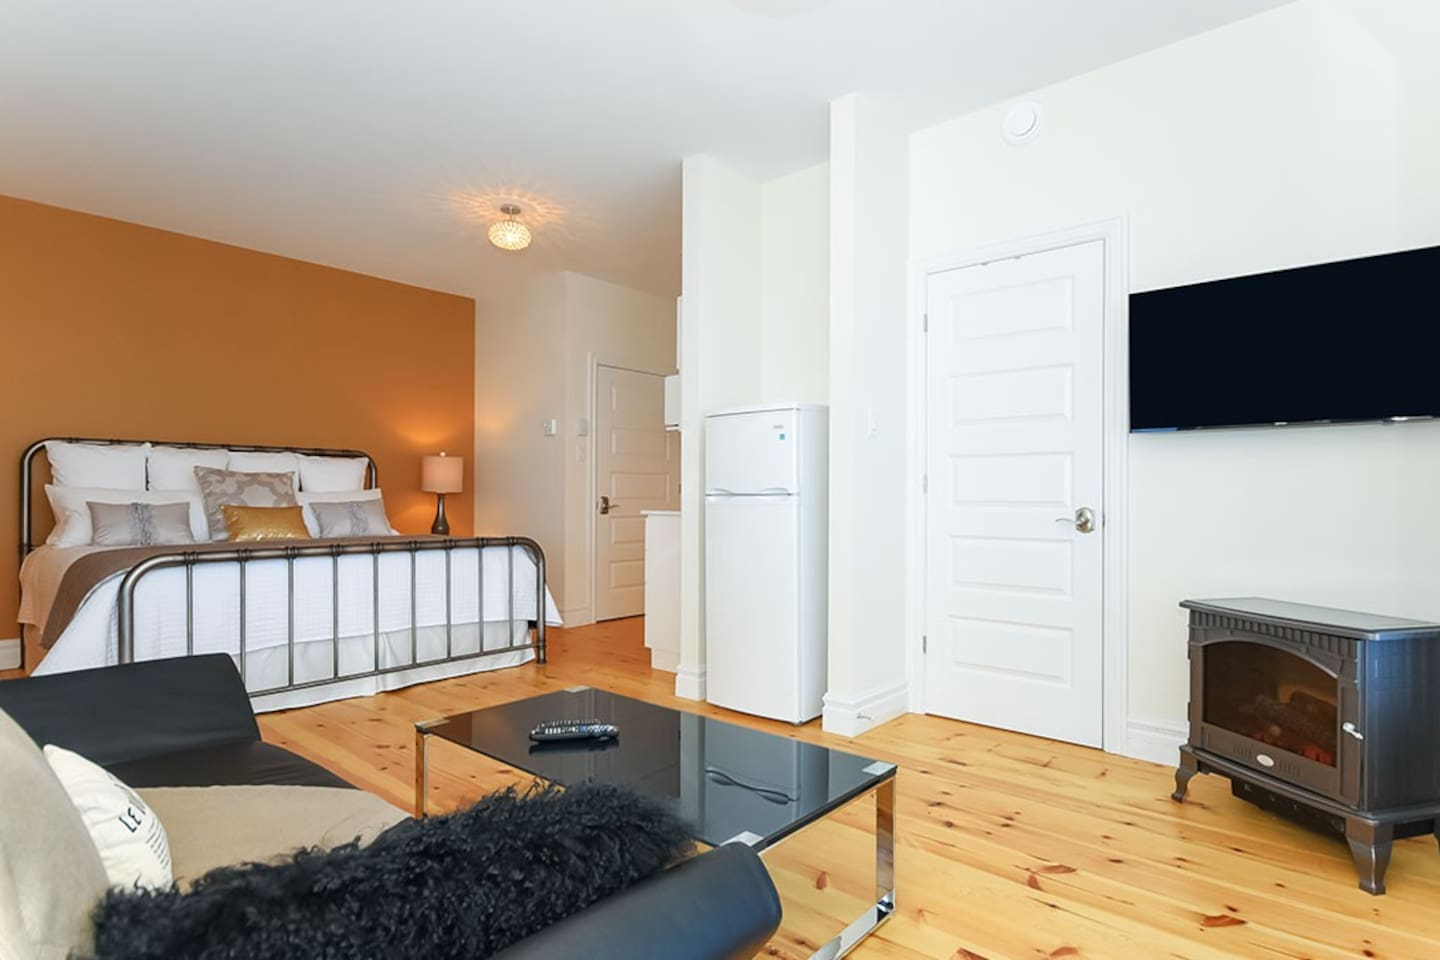 Each bedroom is very large, modern and clean. Includes Netflix enabled smart TV.